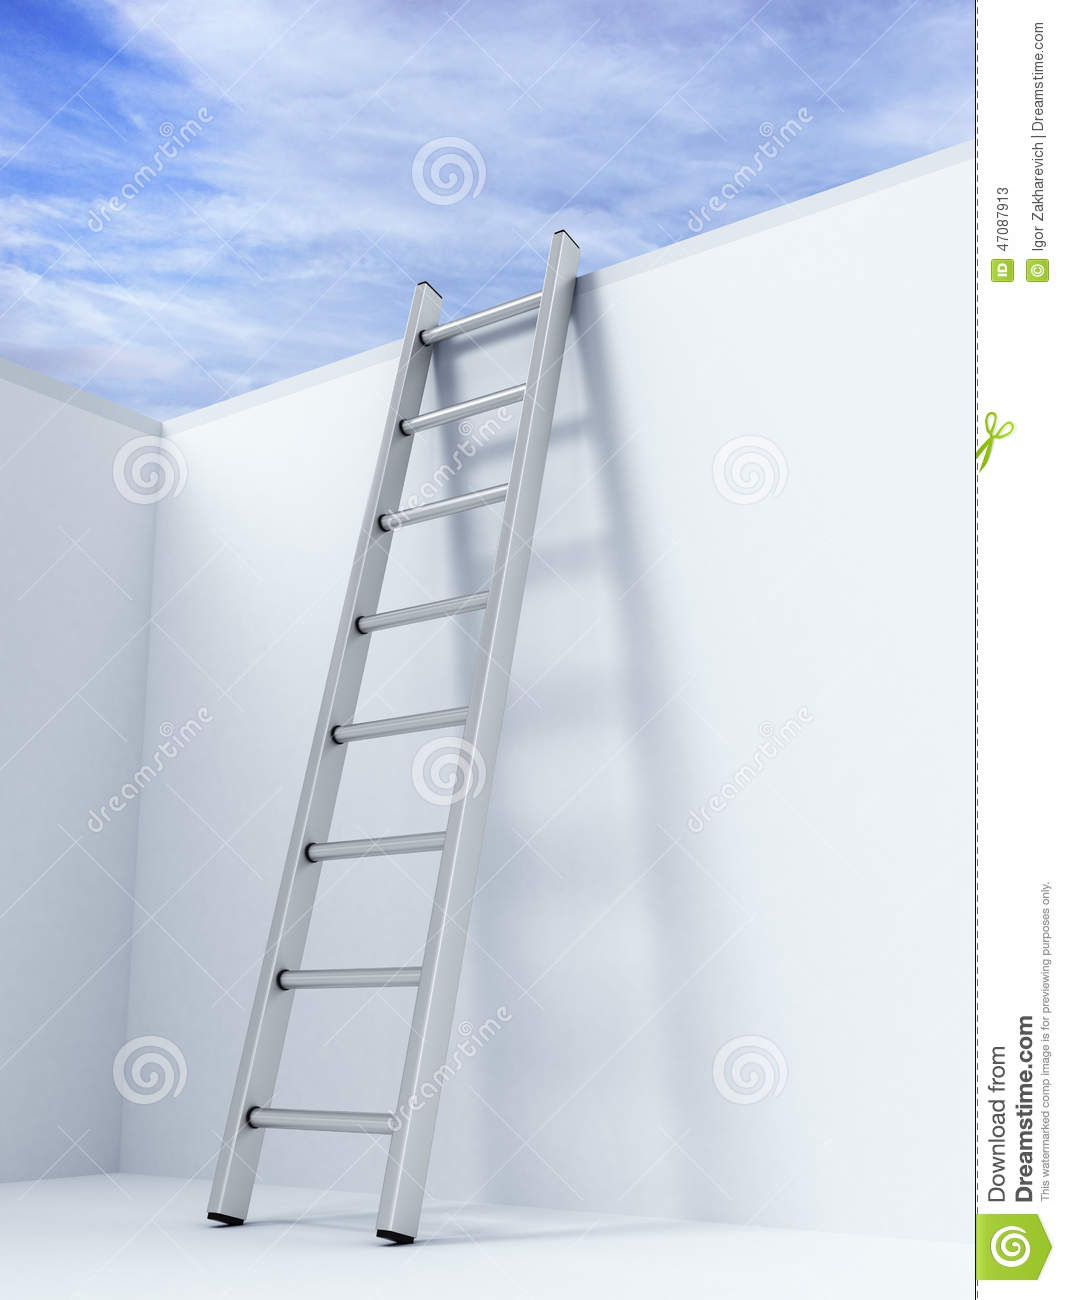 ladder on wall - photo #5